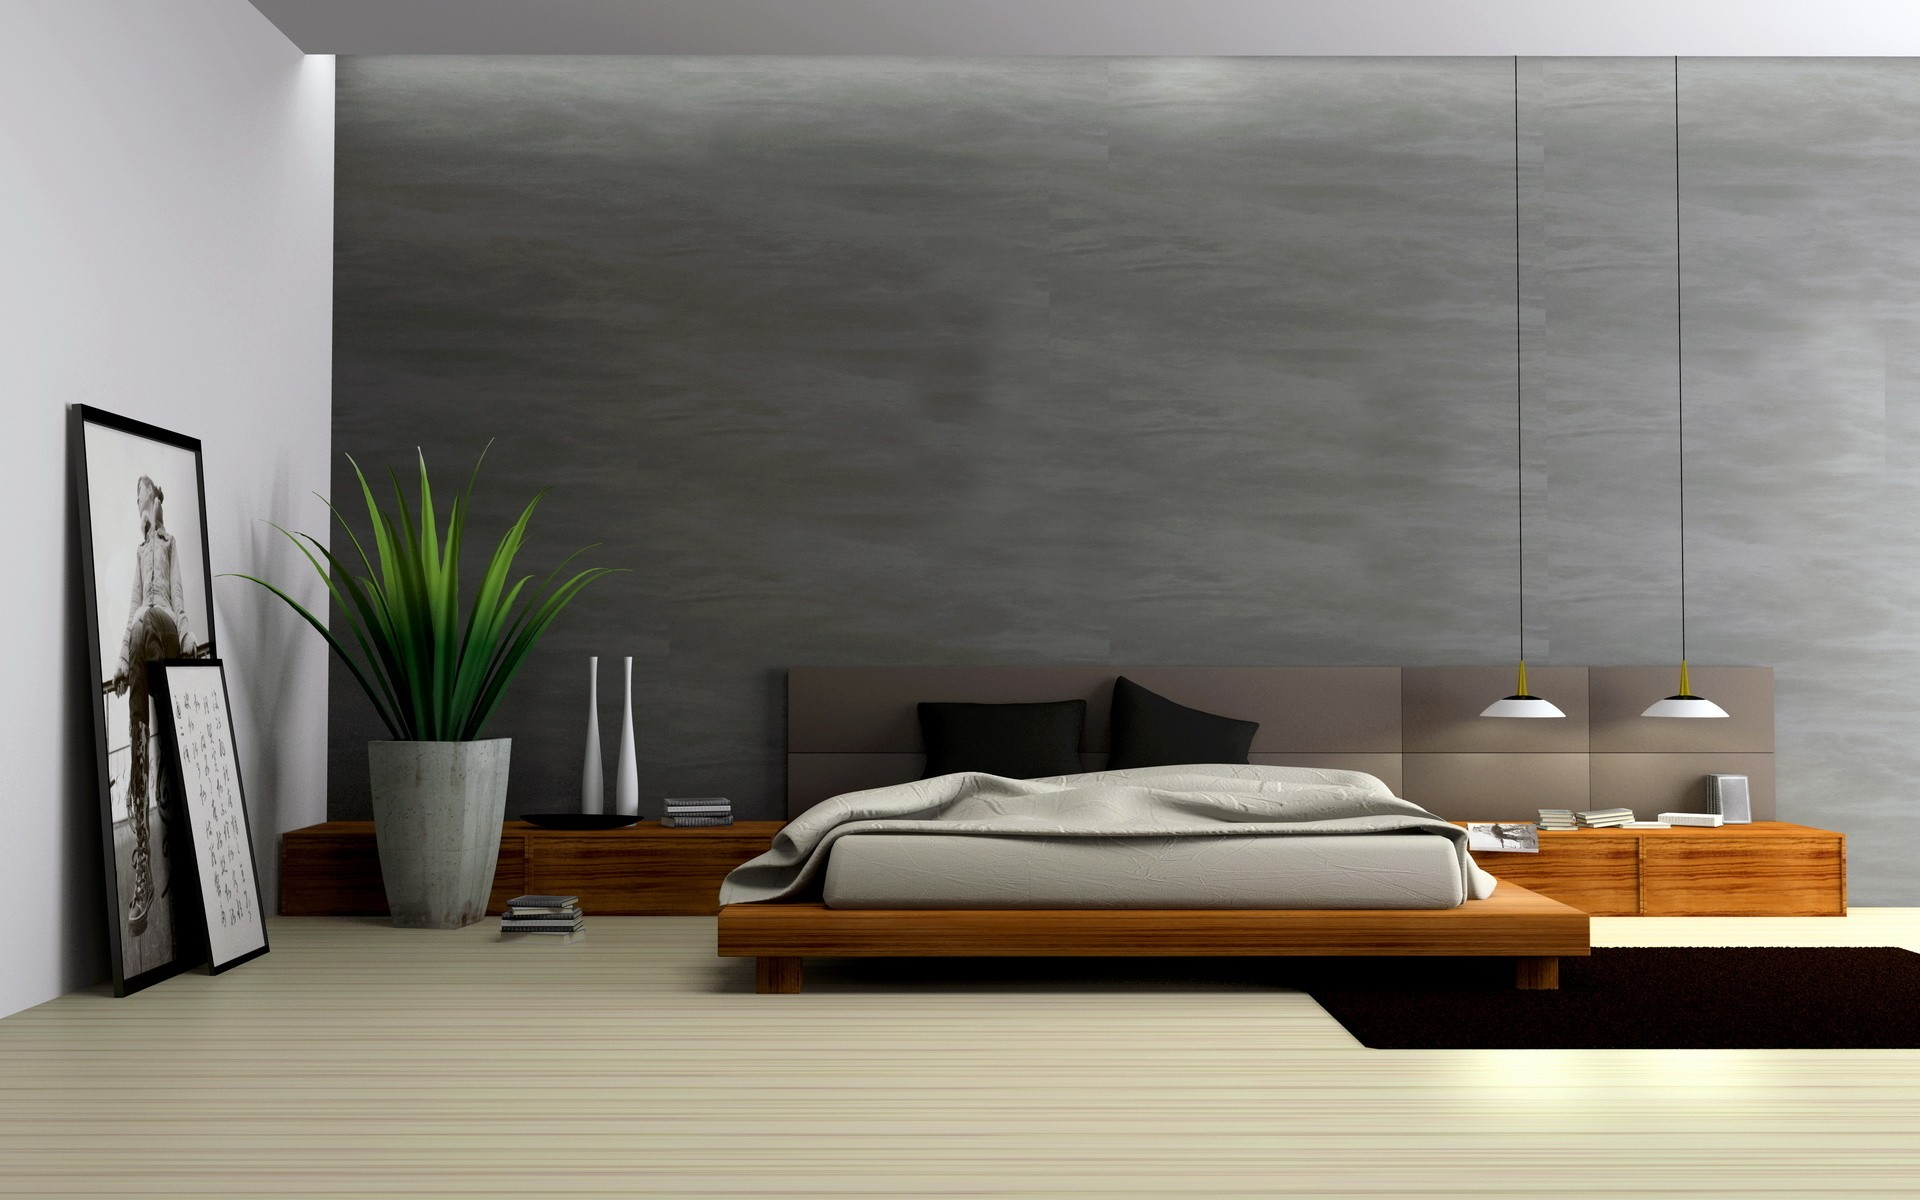 interior room how to create amazing living room designs 37 ideas download interior room wallpaper gallery